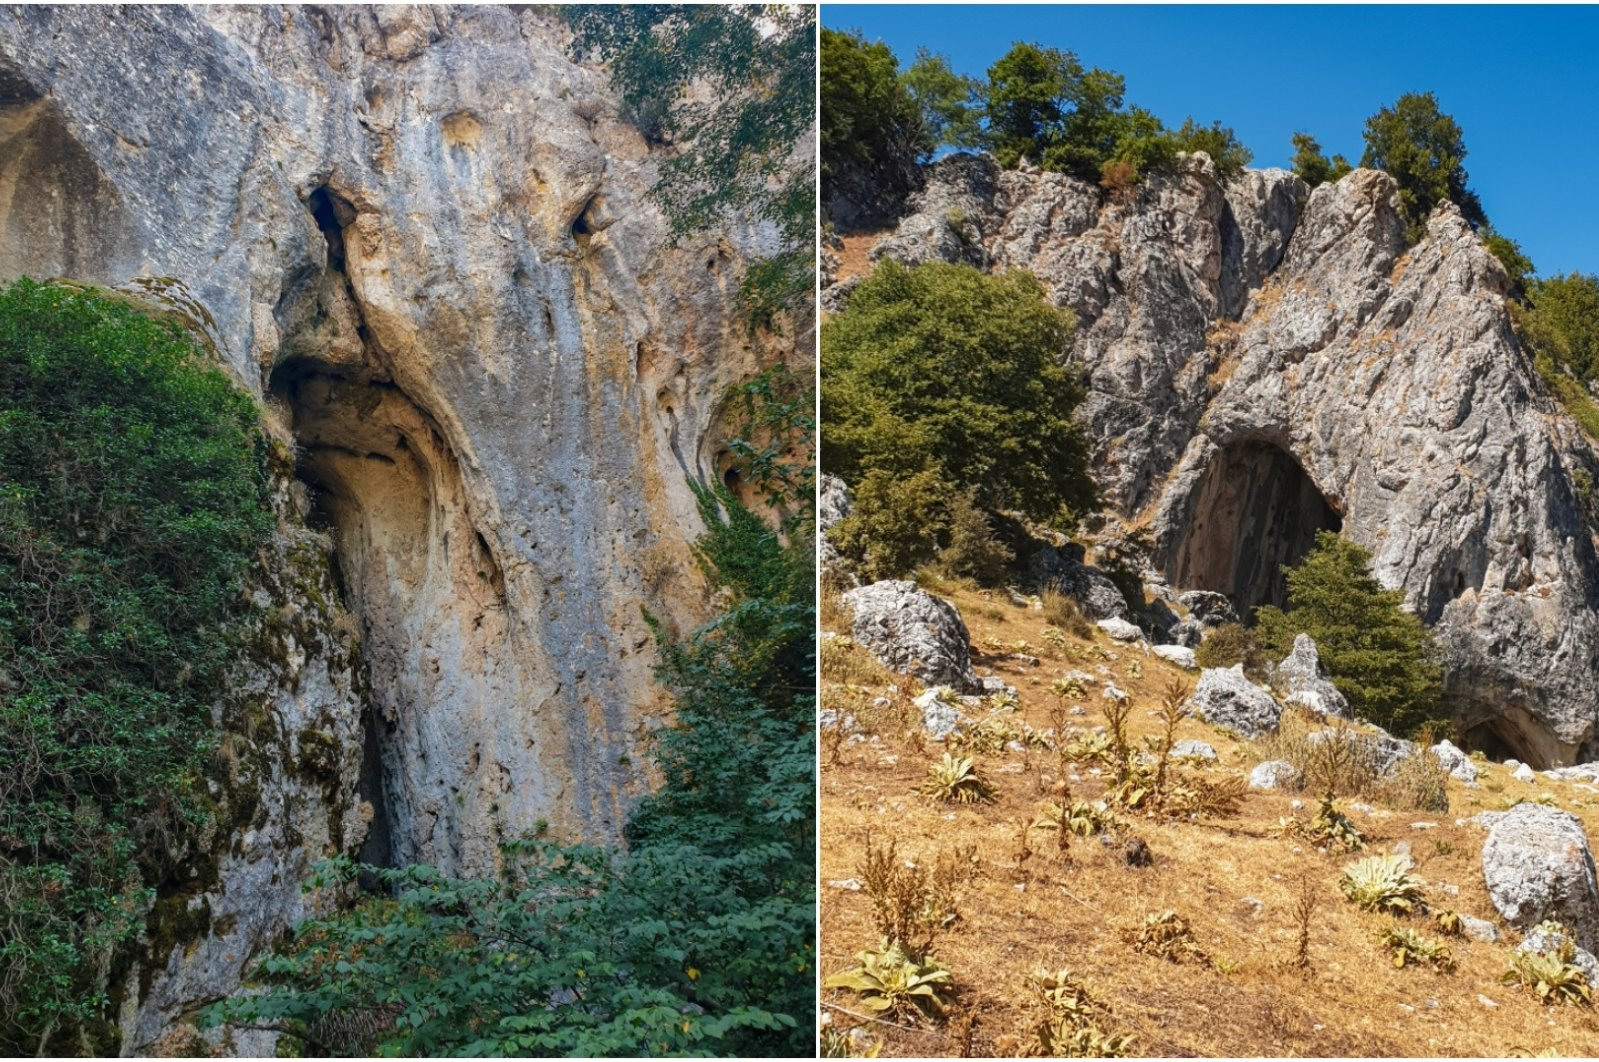 Combination of images shows the two entrances of Beyyayla Cave, from the Bolu side (L) and the Eskişehir side.